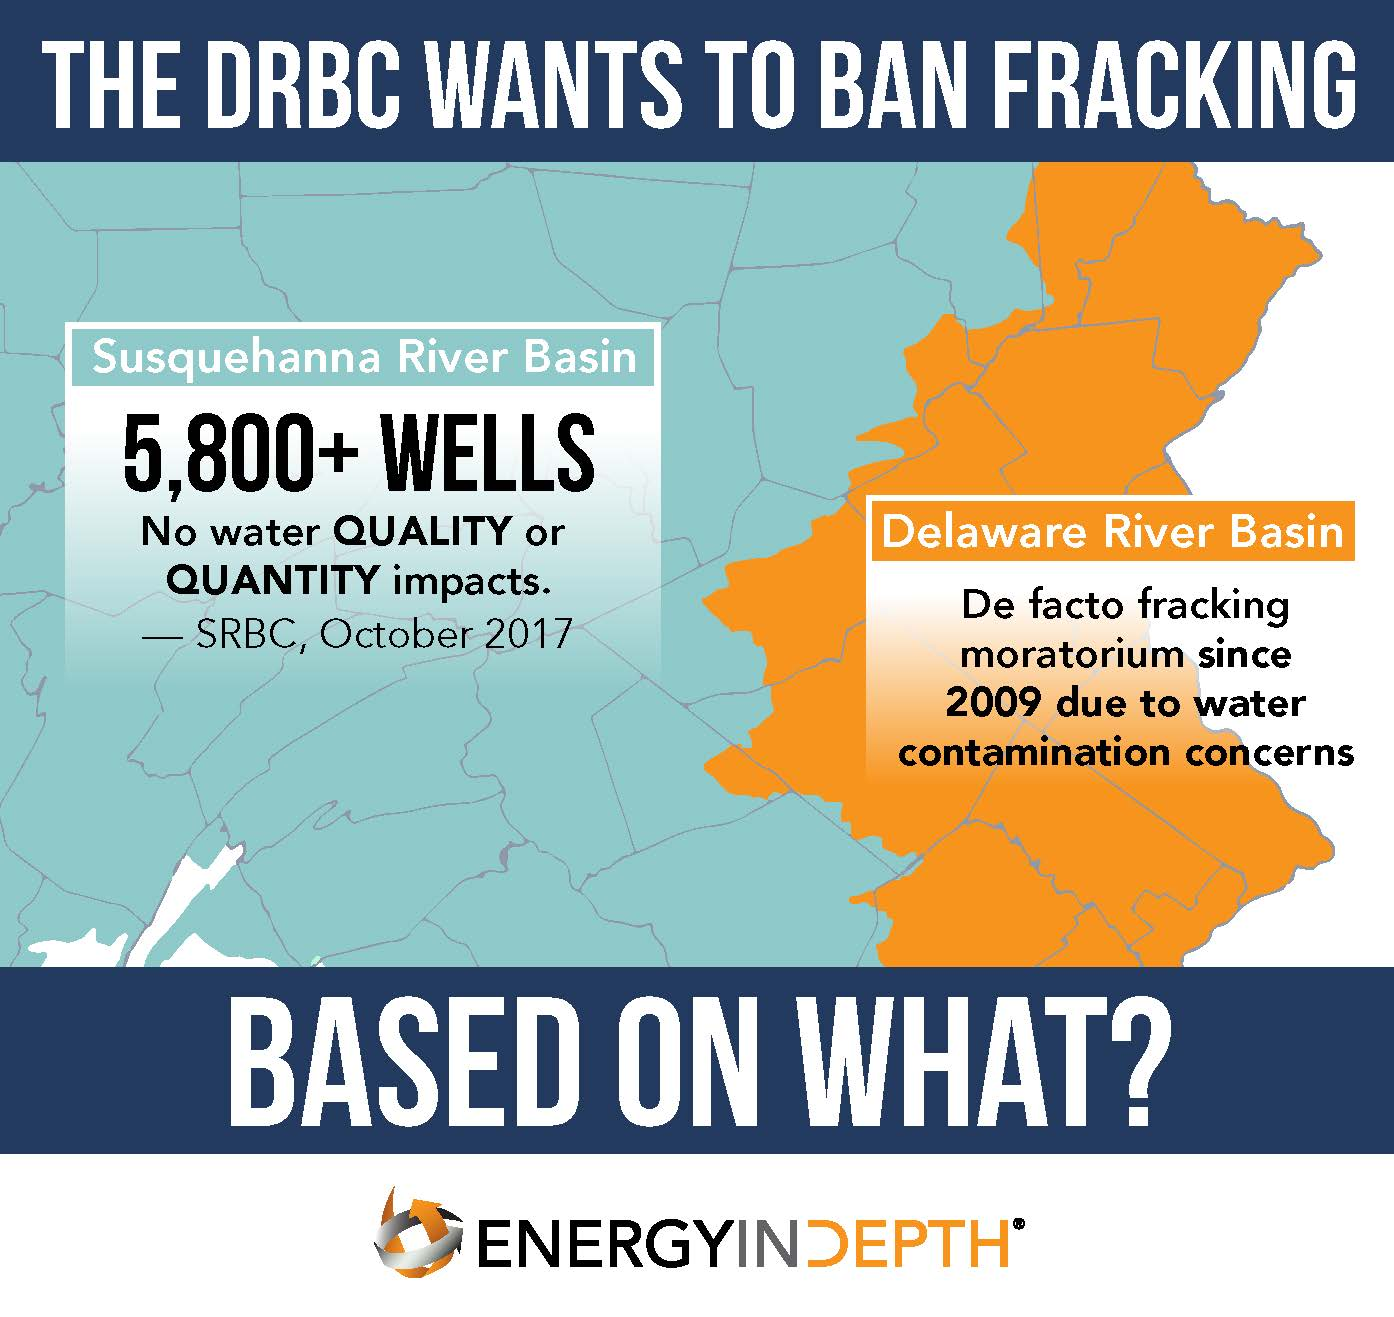 Pa. DEP Secretary Tells Sen. Baker Fracking 'Has Been Fine on the SRBC Side'